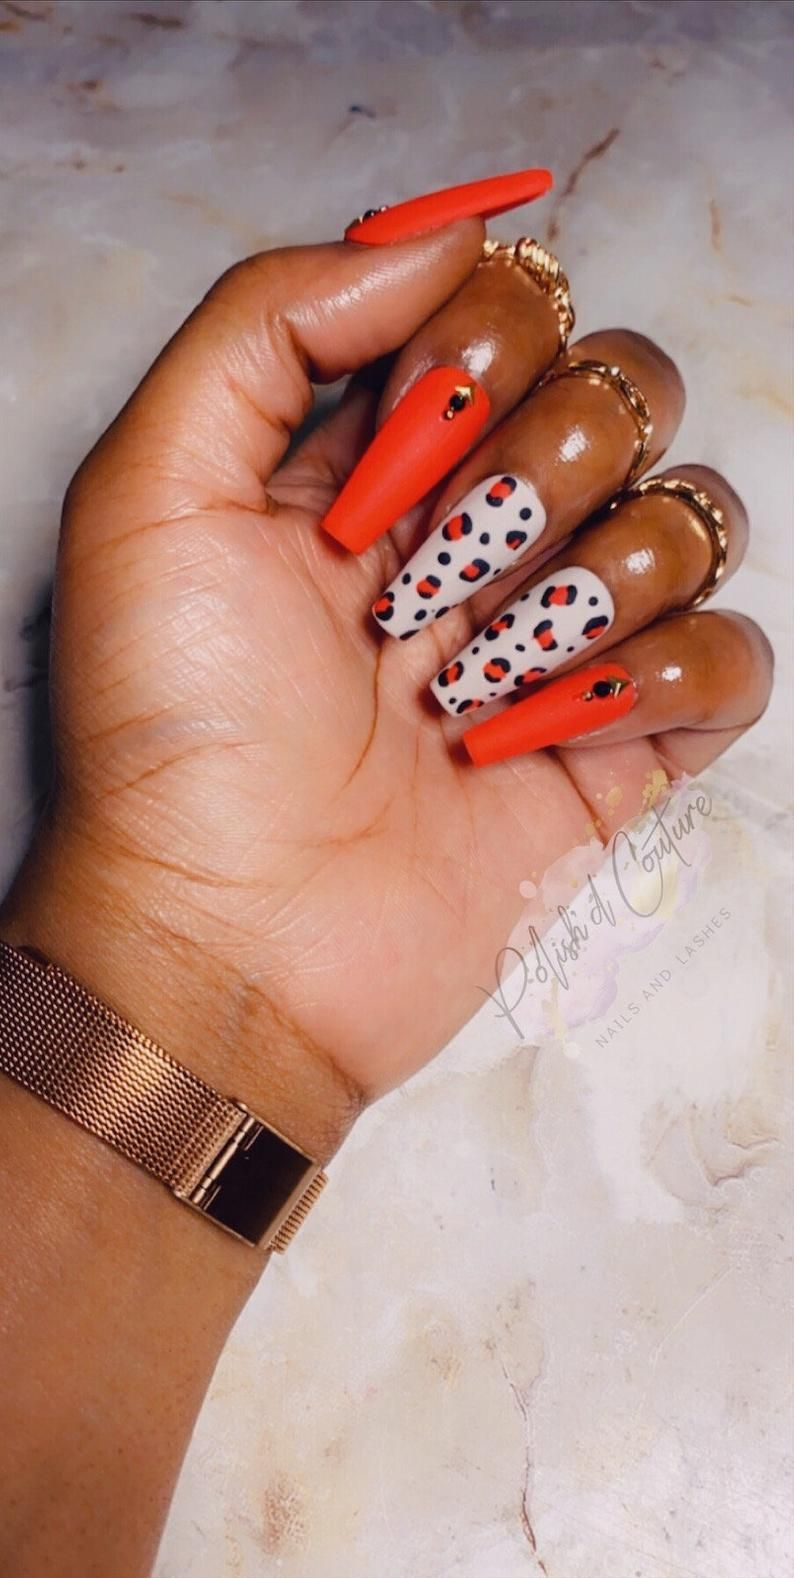 Red Leopard Print Press On Nails Press On Nails Glue On Etsy In 2020 Glue On Nails Leopard Print Nails Best Acrylic Nails